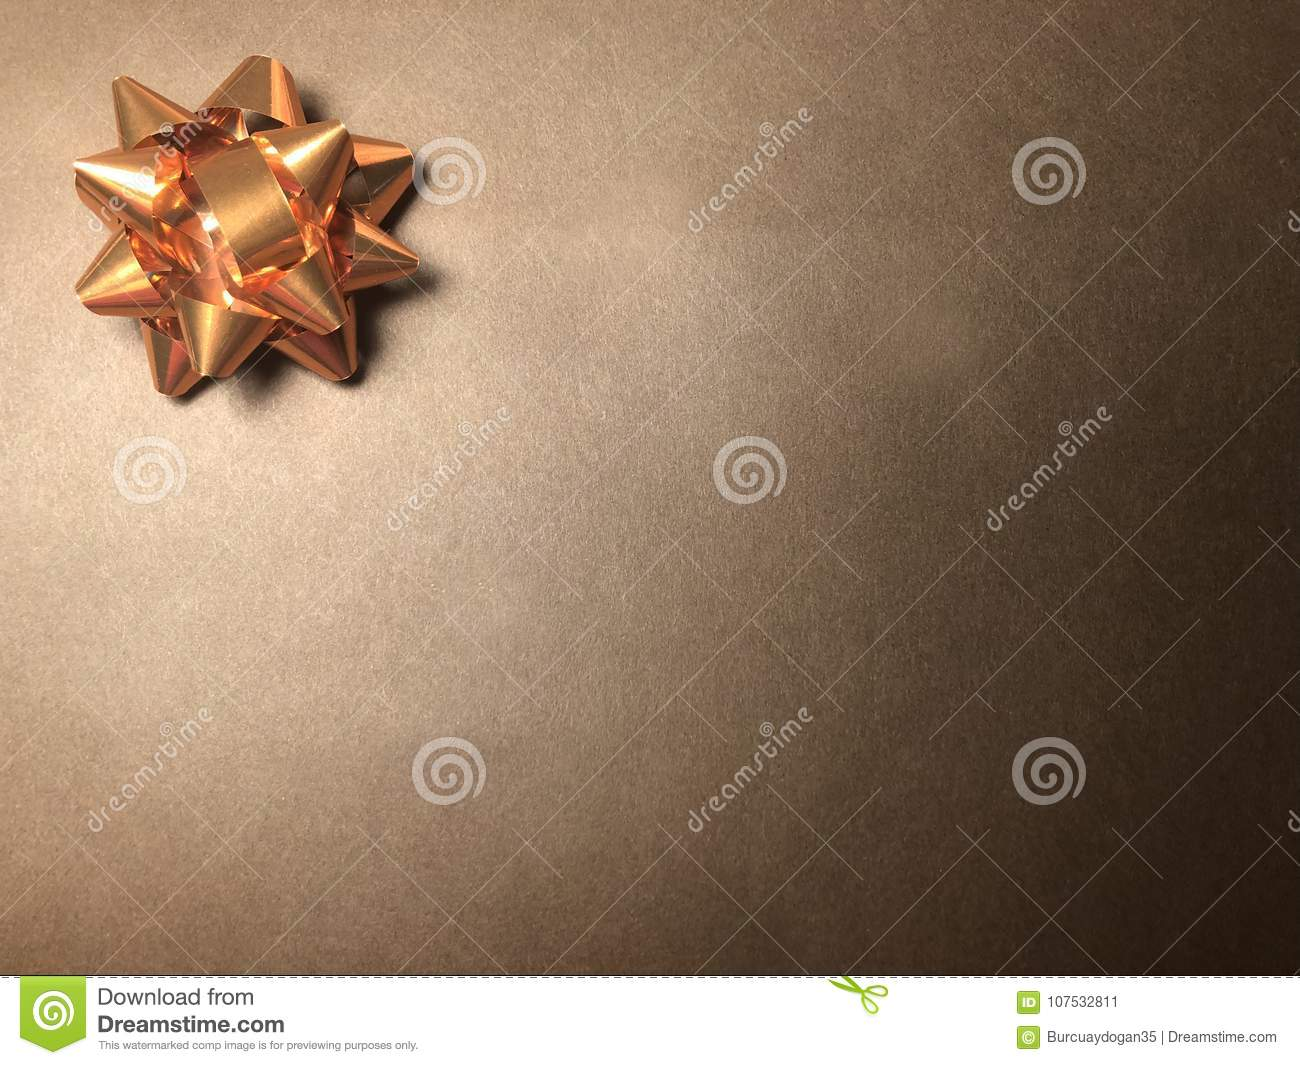 Empty message area with ornament as bright star, note paper or frame on dark and light brown background.